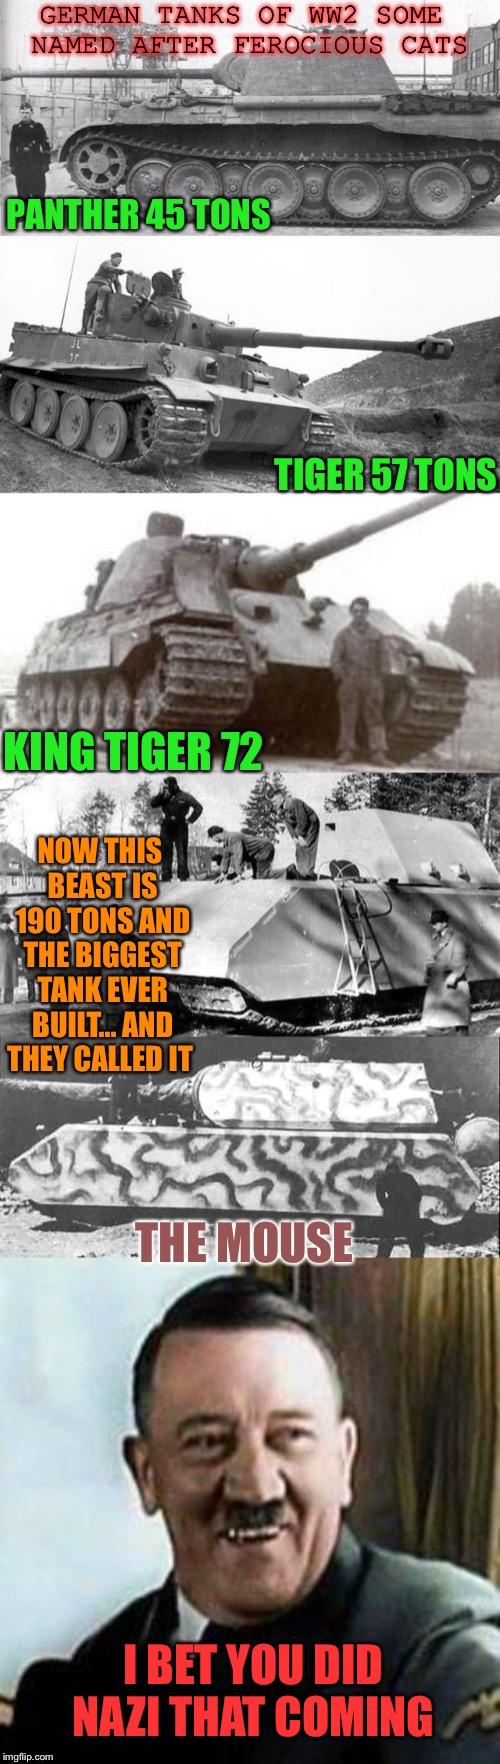 True story bro ! | GERMAN TANKS OF WW2 SOME NAMED AFTER FEROCIOUS CATS PANTHER 45 TONS TIGER 57 TONS KING TIGER 72 NOW THIS BEAST IS 190 TONS AND THE BIGGEST T | image tagged in laughing hitler,subverting expectations worse than rian johnson,ww2 | made w/ Imgflip meme maker